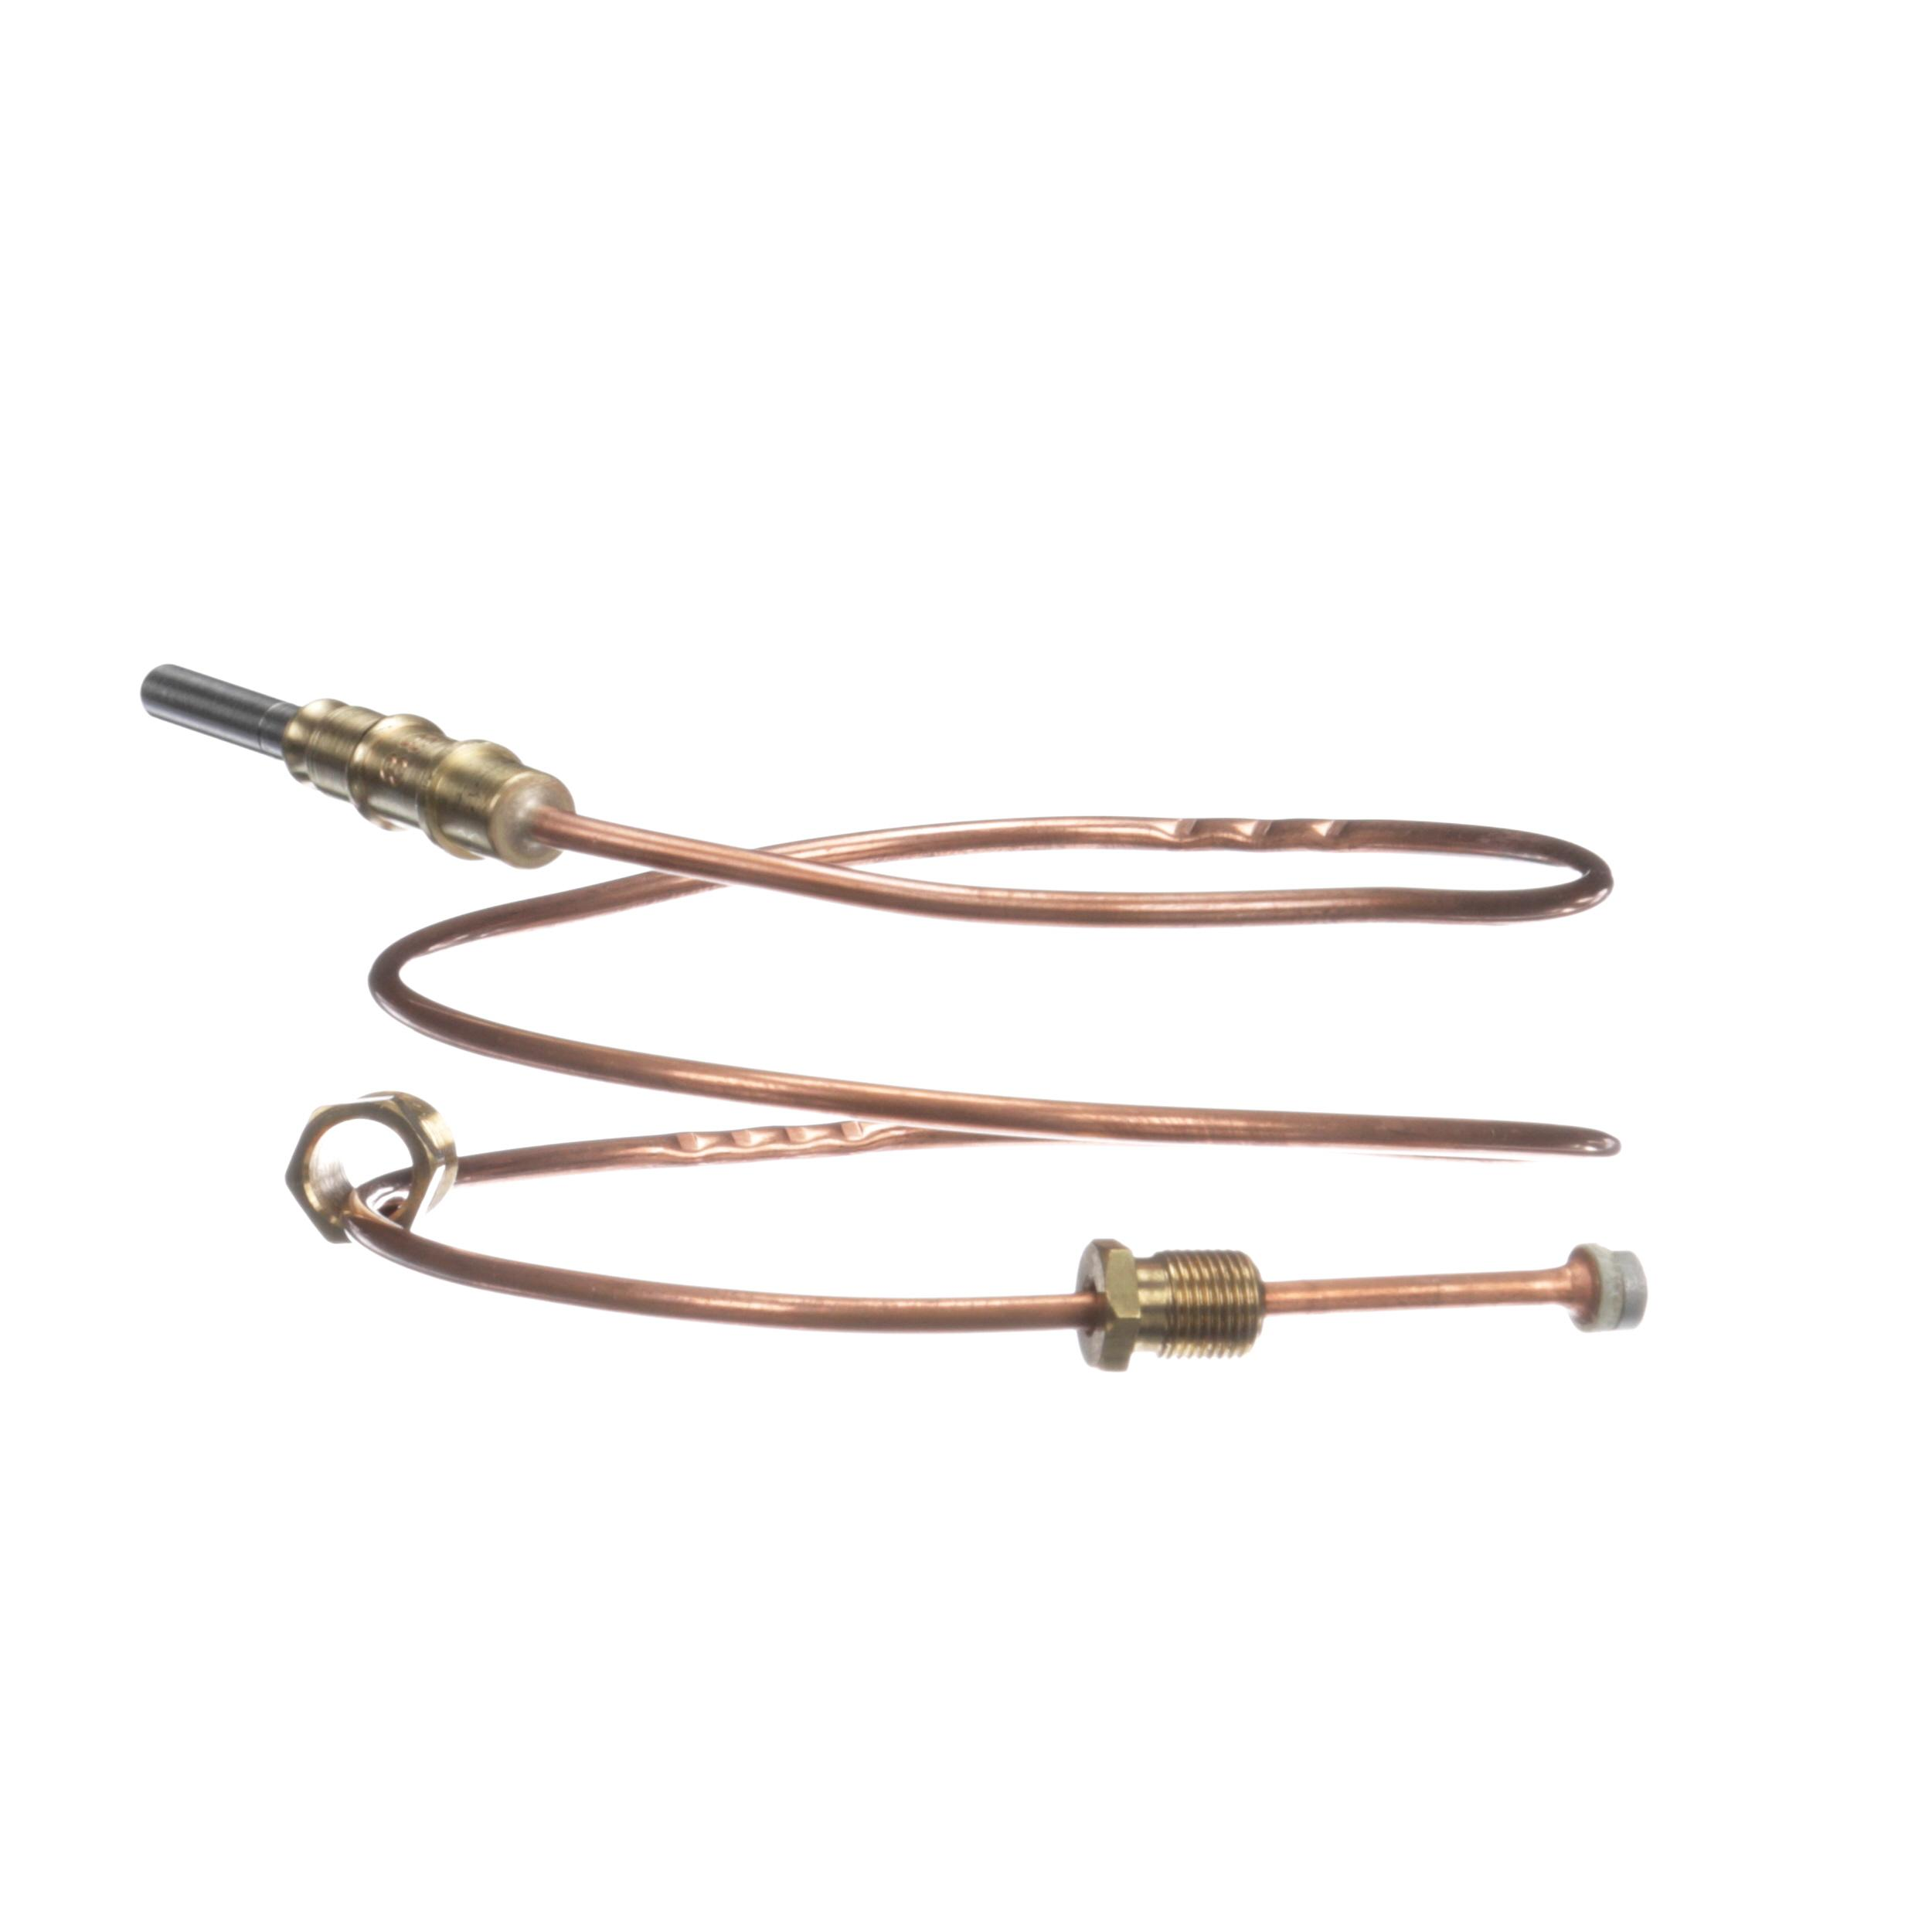 MONTAGUE THERMOCOUPLE